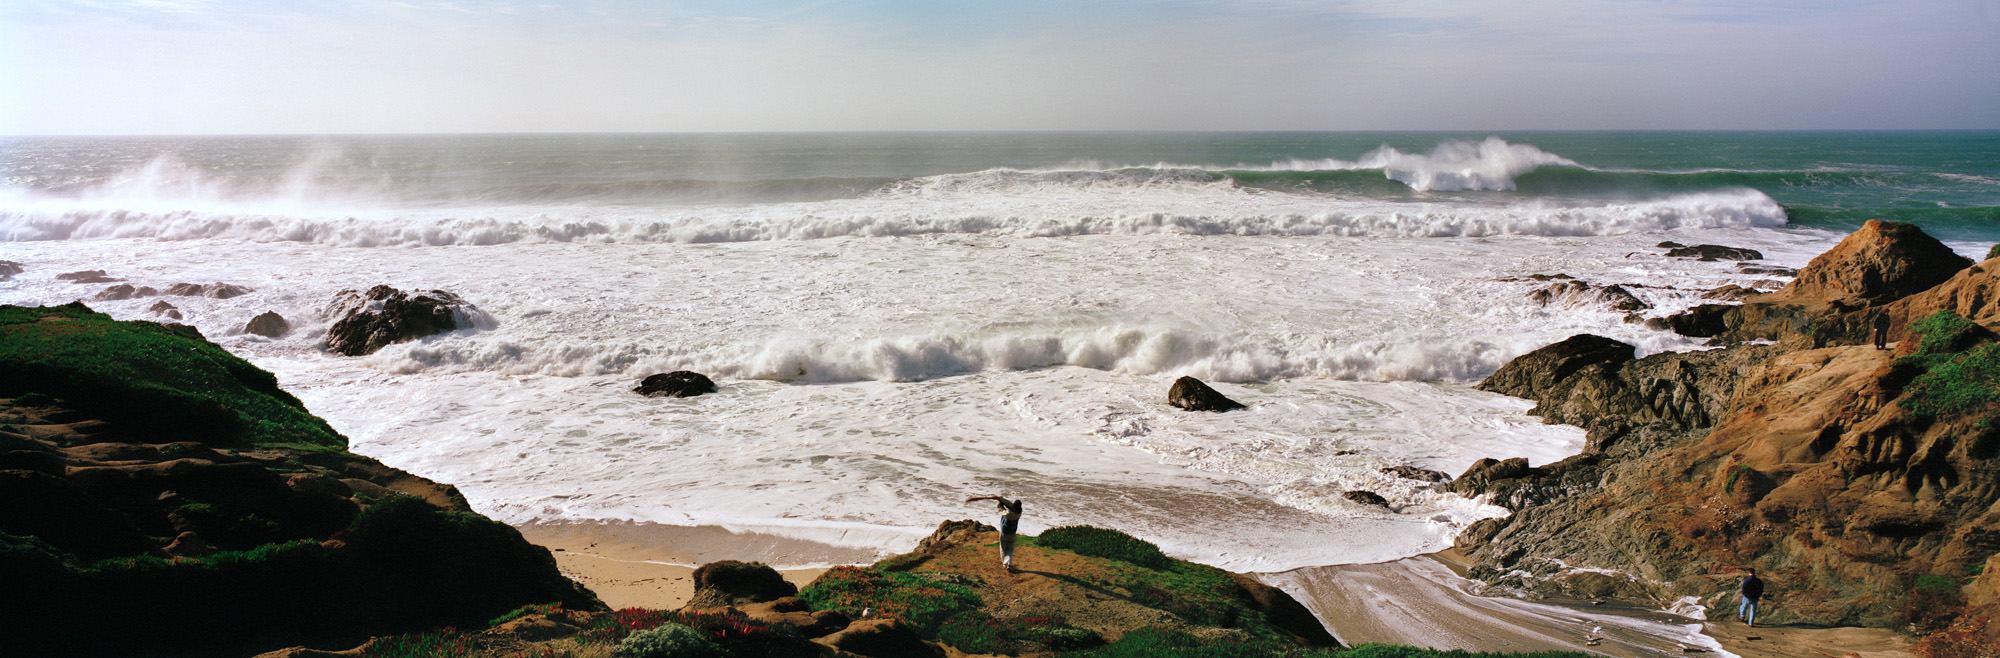 Batting, Bodega Head, California, 1998